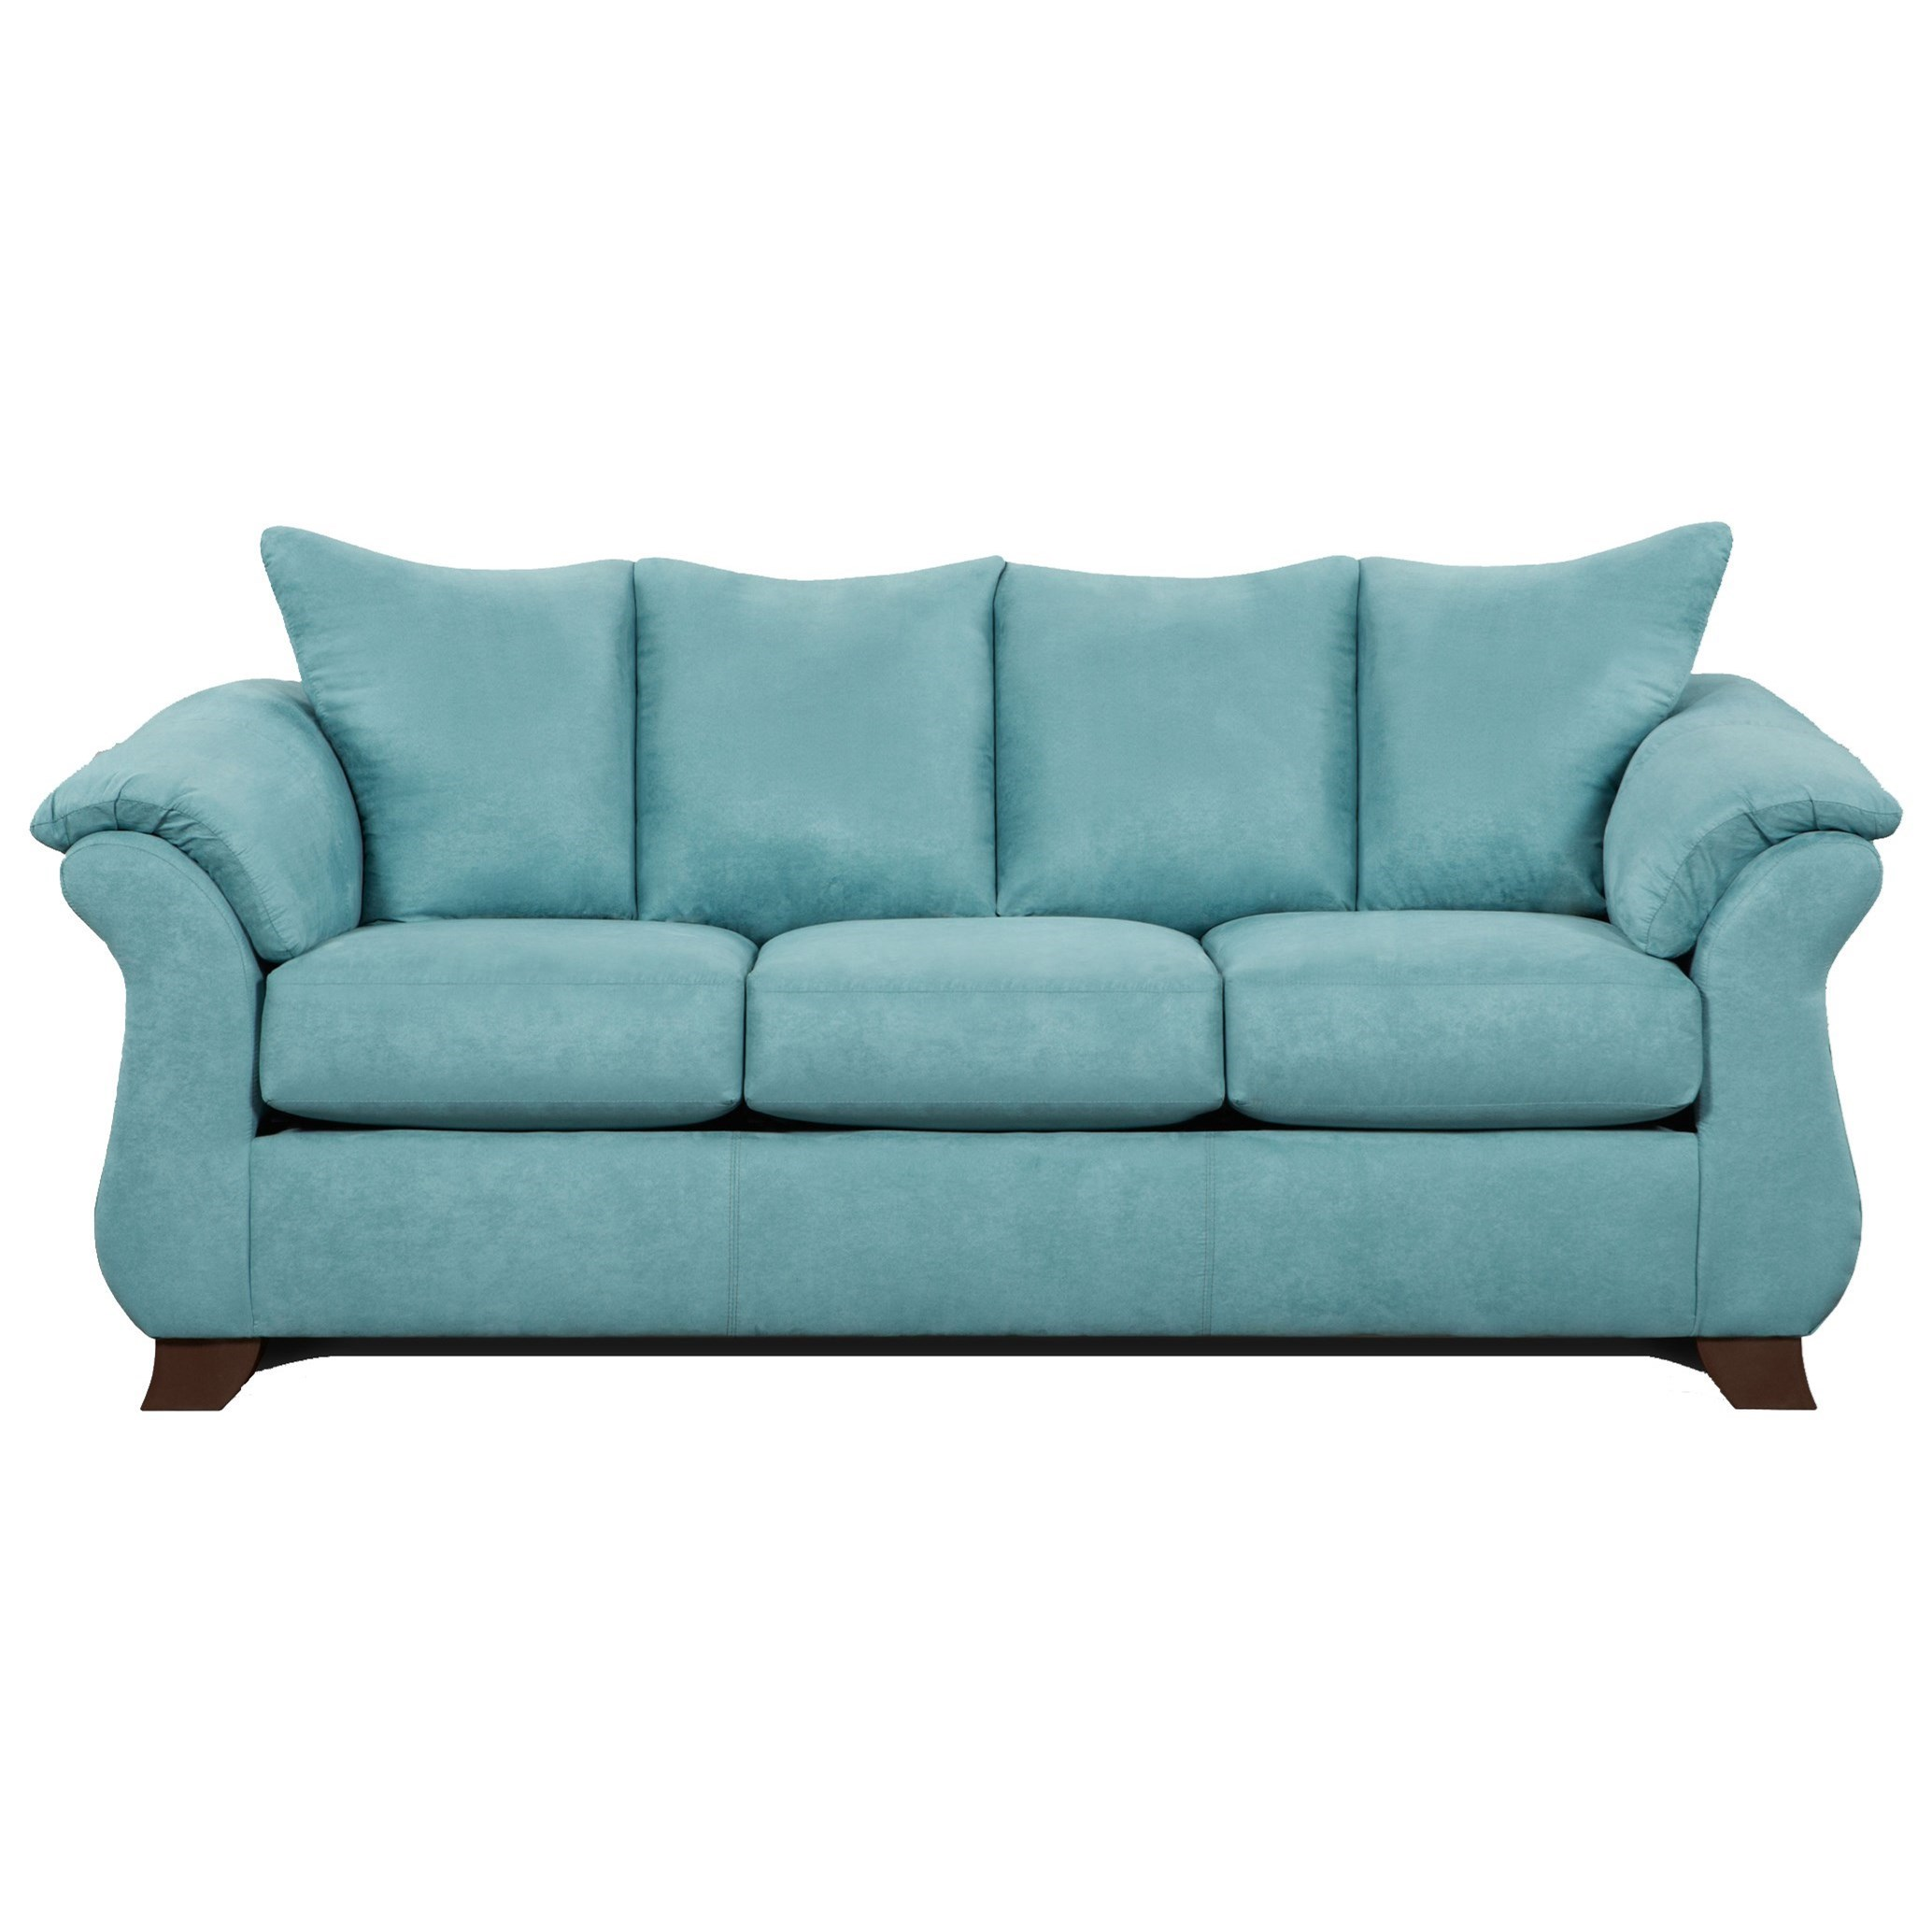 fascinating Affordable Sleeper Sofa Part - 7: Affordable Furniture 6700Queen Sleeper Sofa ...